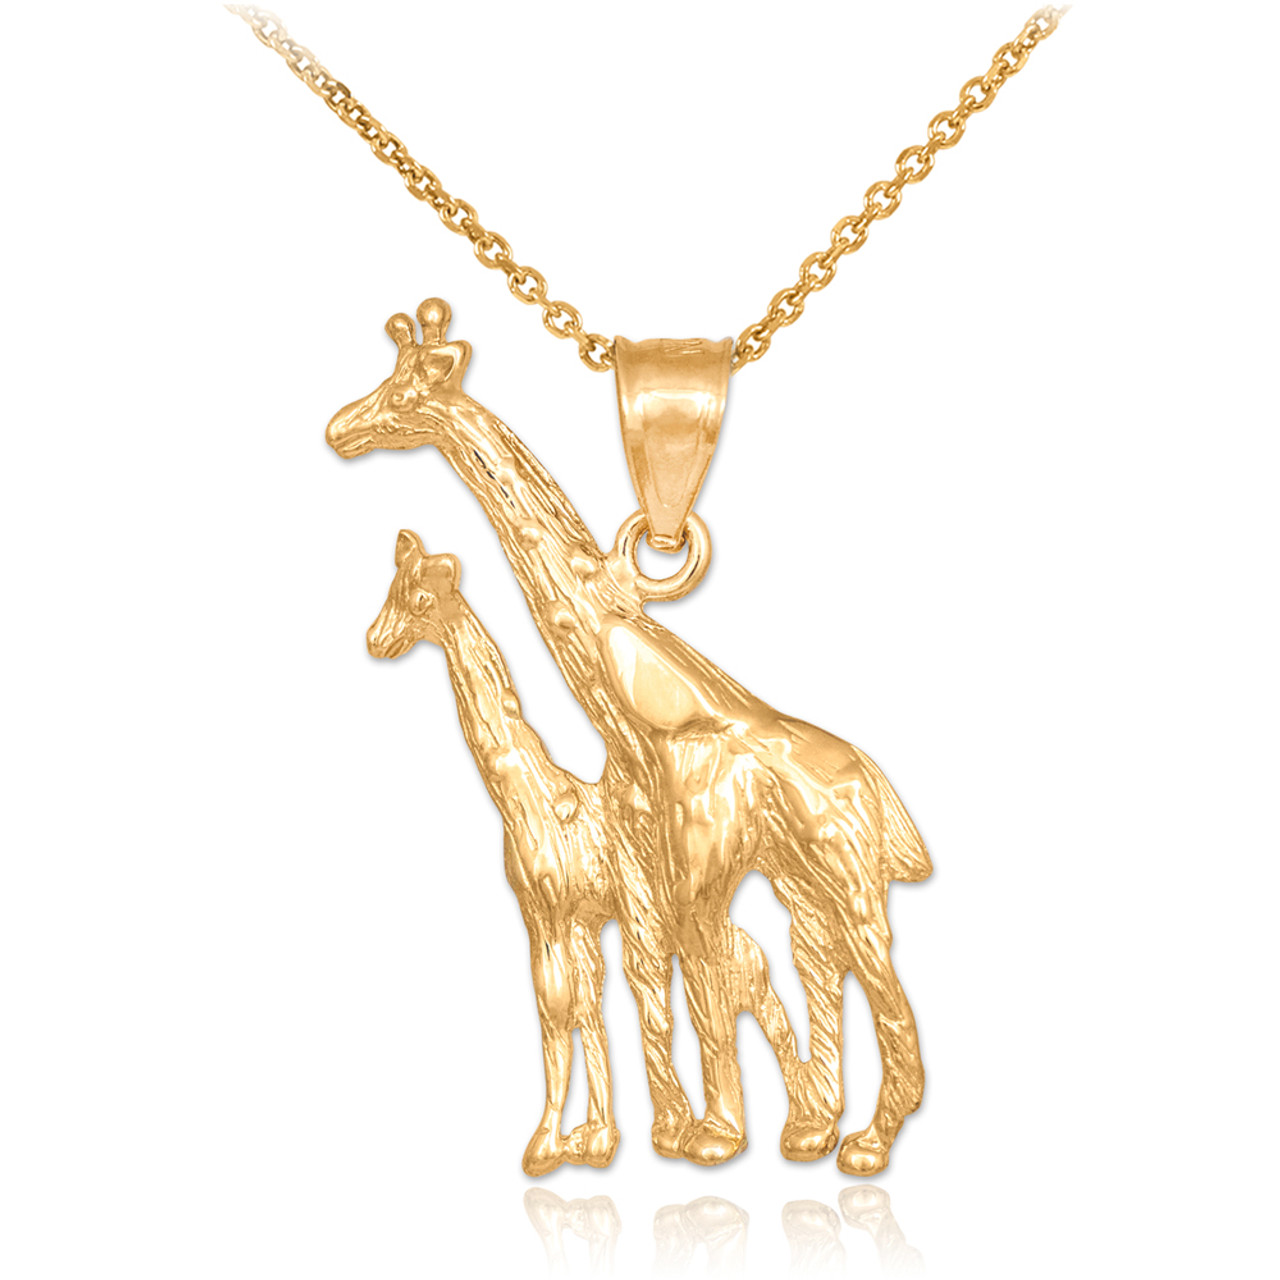 pendants treasures hautelook needful jewelry smoky pendant dazzling things and giraffe silver citrine sterling quartz pin pinterest